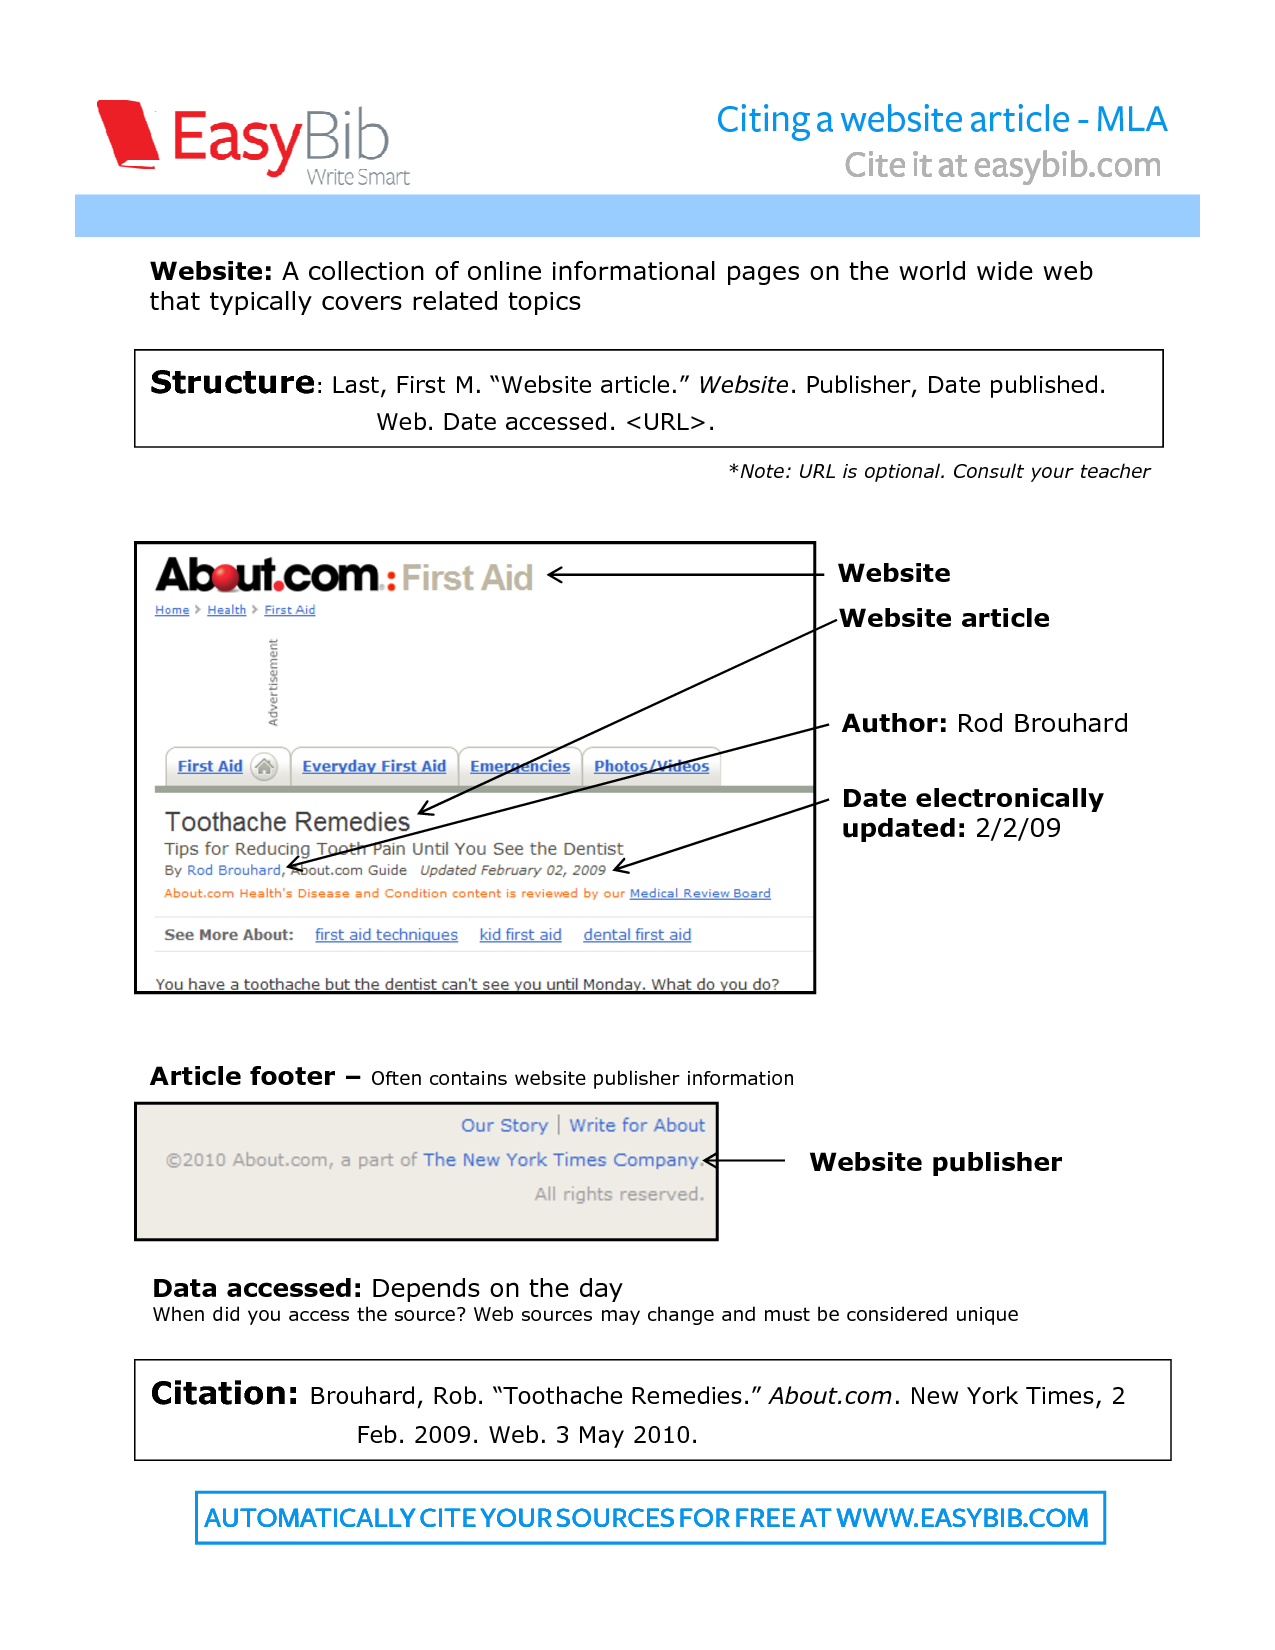 mla format citations for websites